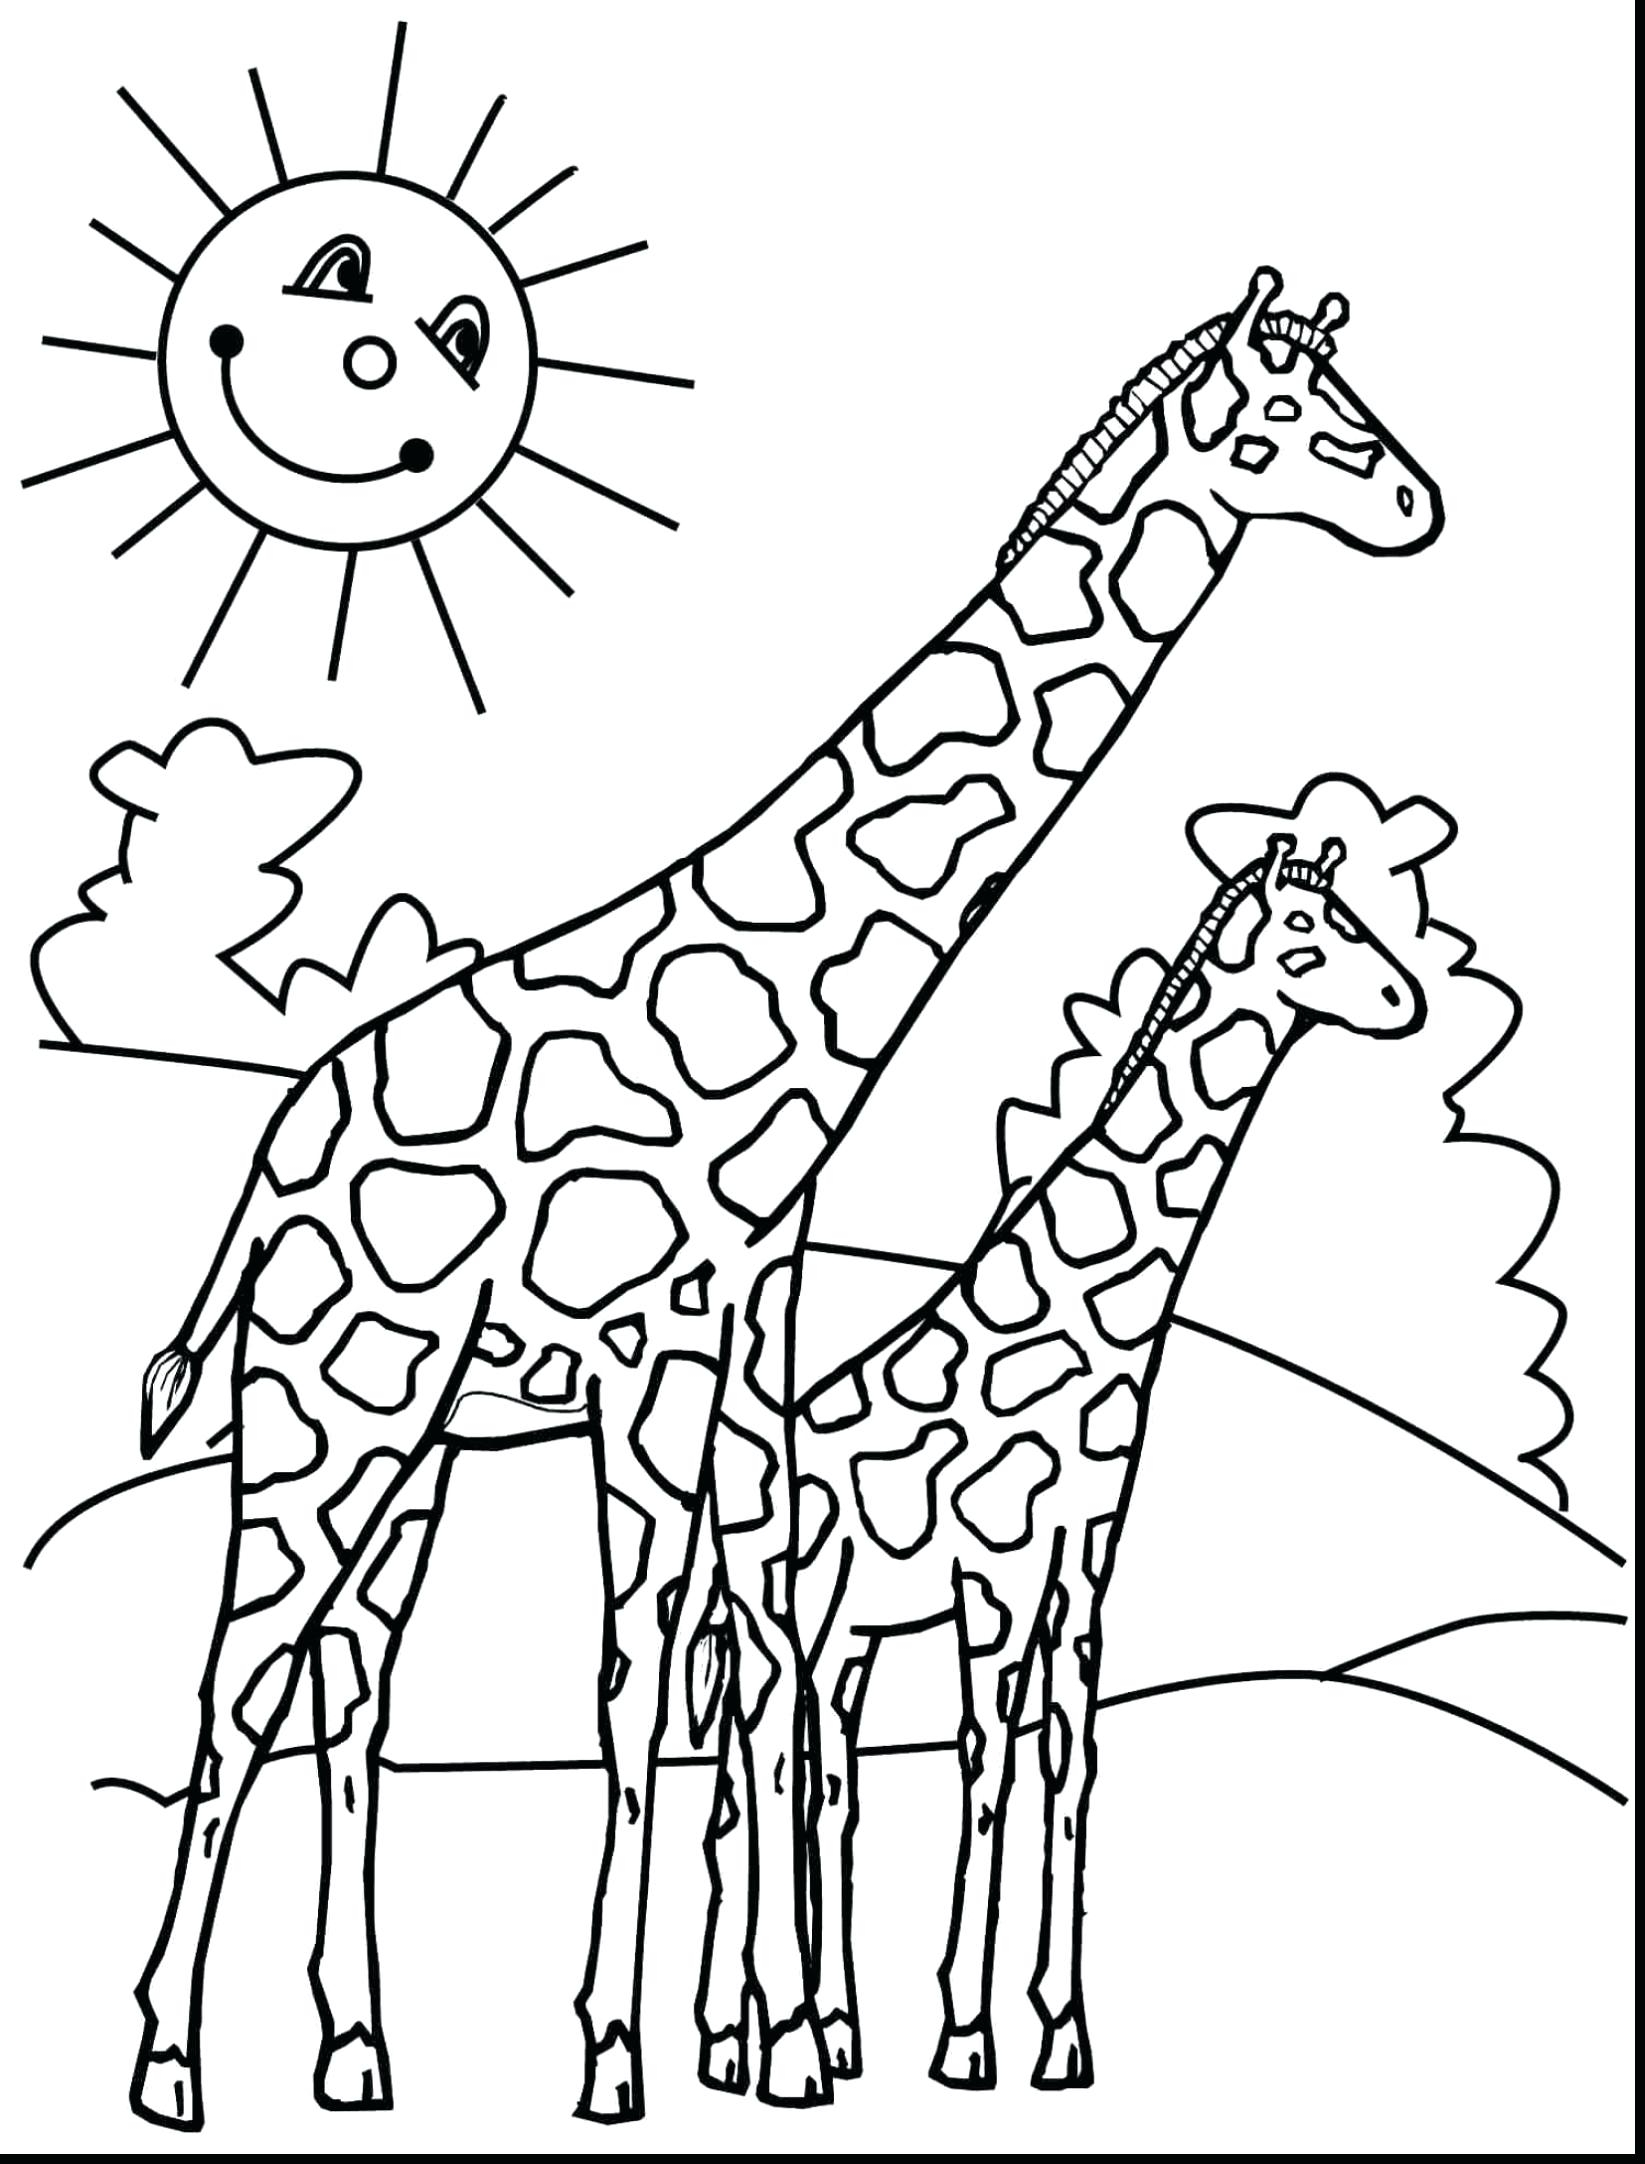 1645x2164 Baby Giraffe Coloring Pages Free Coloring For Kids